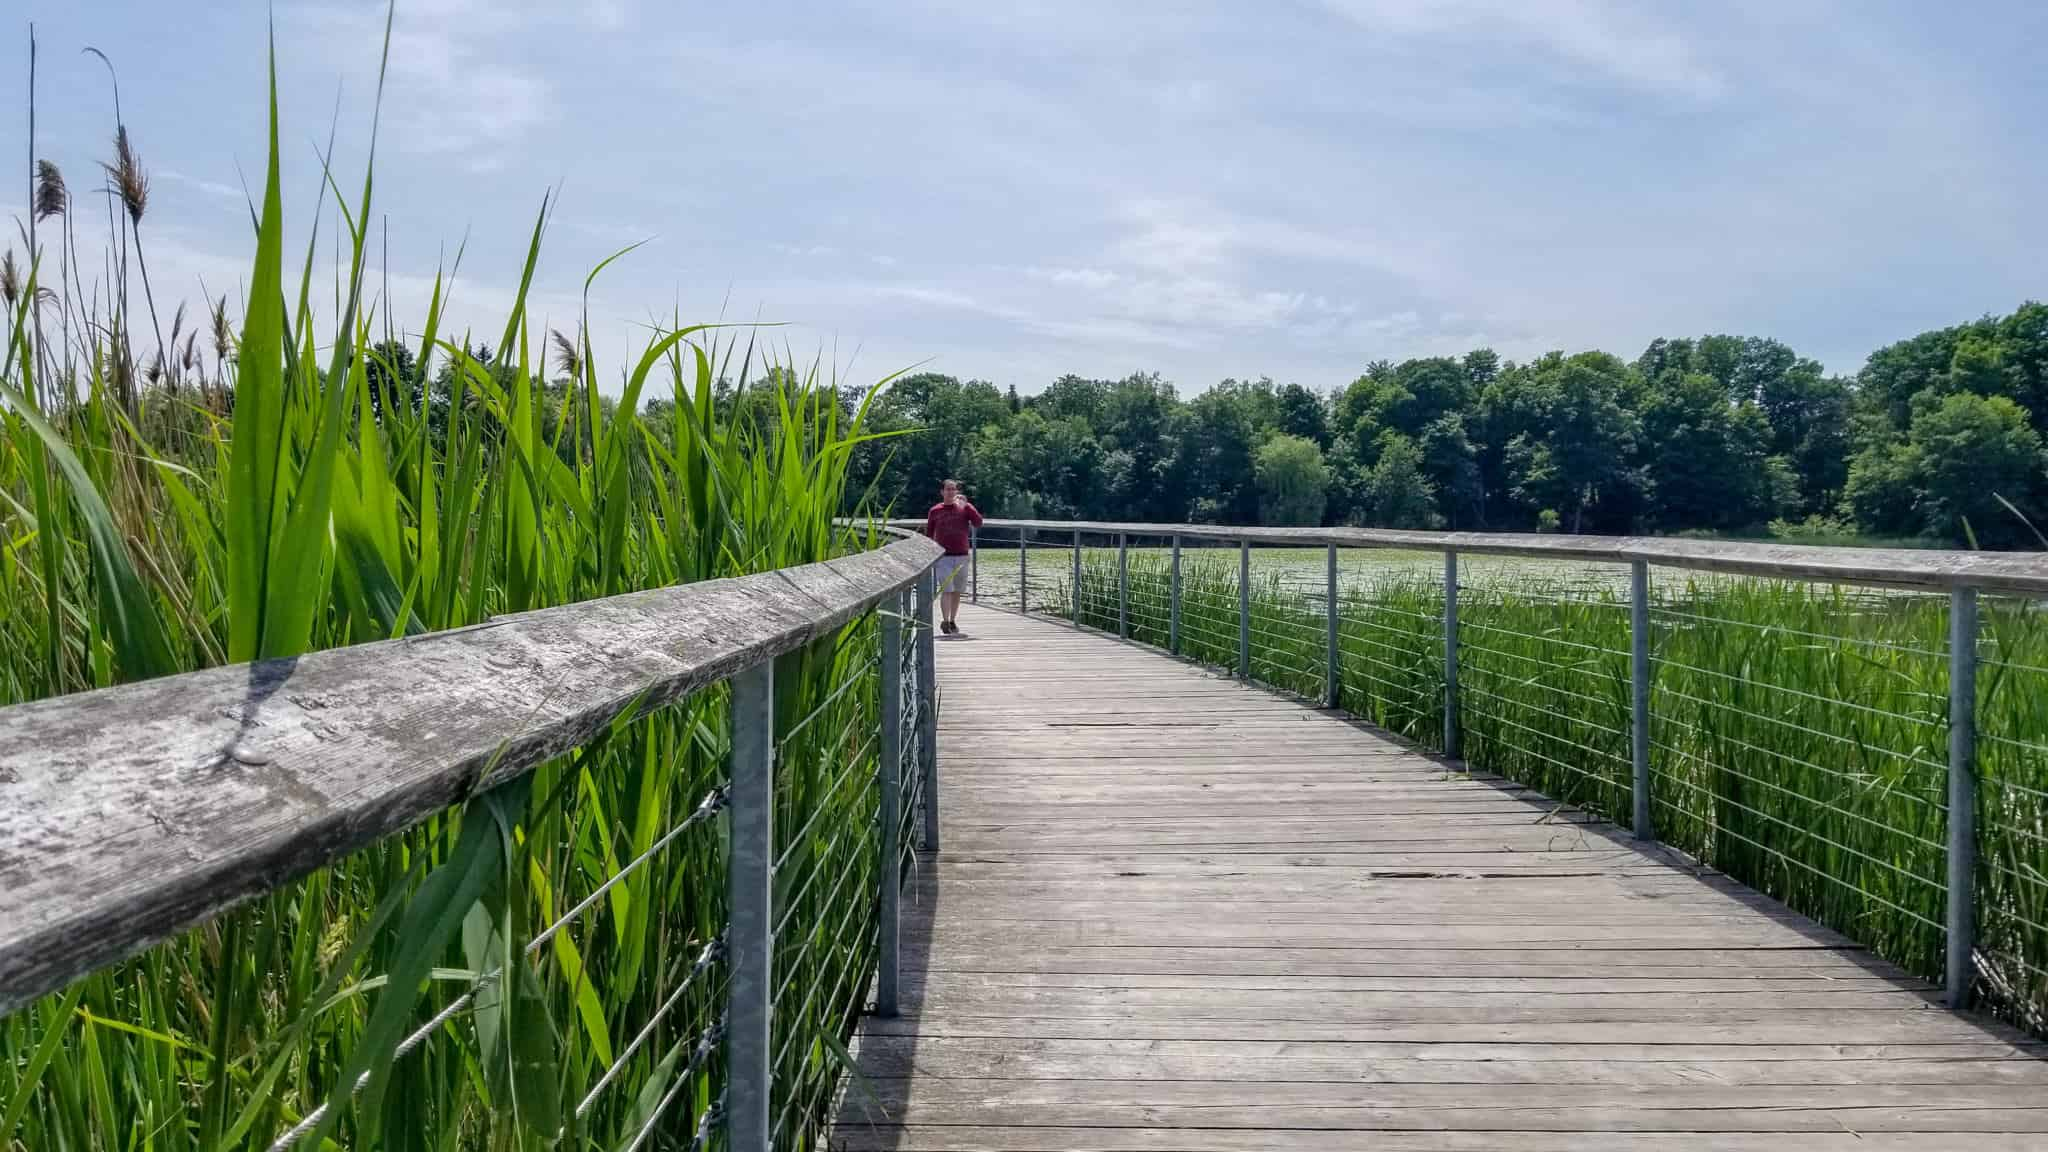 The boardwalk in Rouge Urban National Park